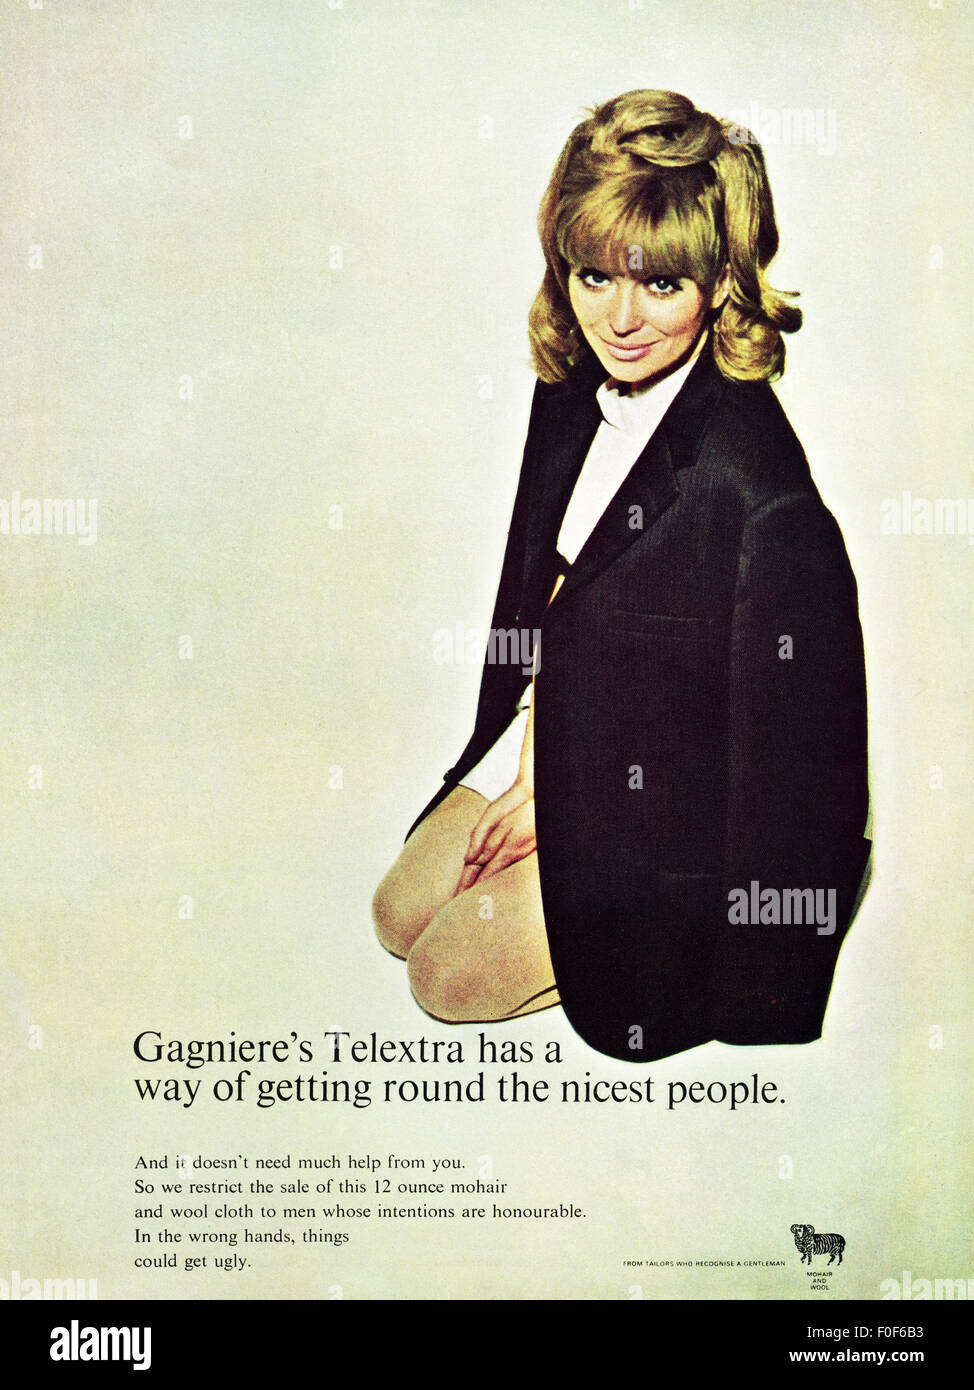 1960s advert. Magazine advertisement dated 1968 advertising Gagniere's Telextra mohair & wool cloth 60s - Stock Image